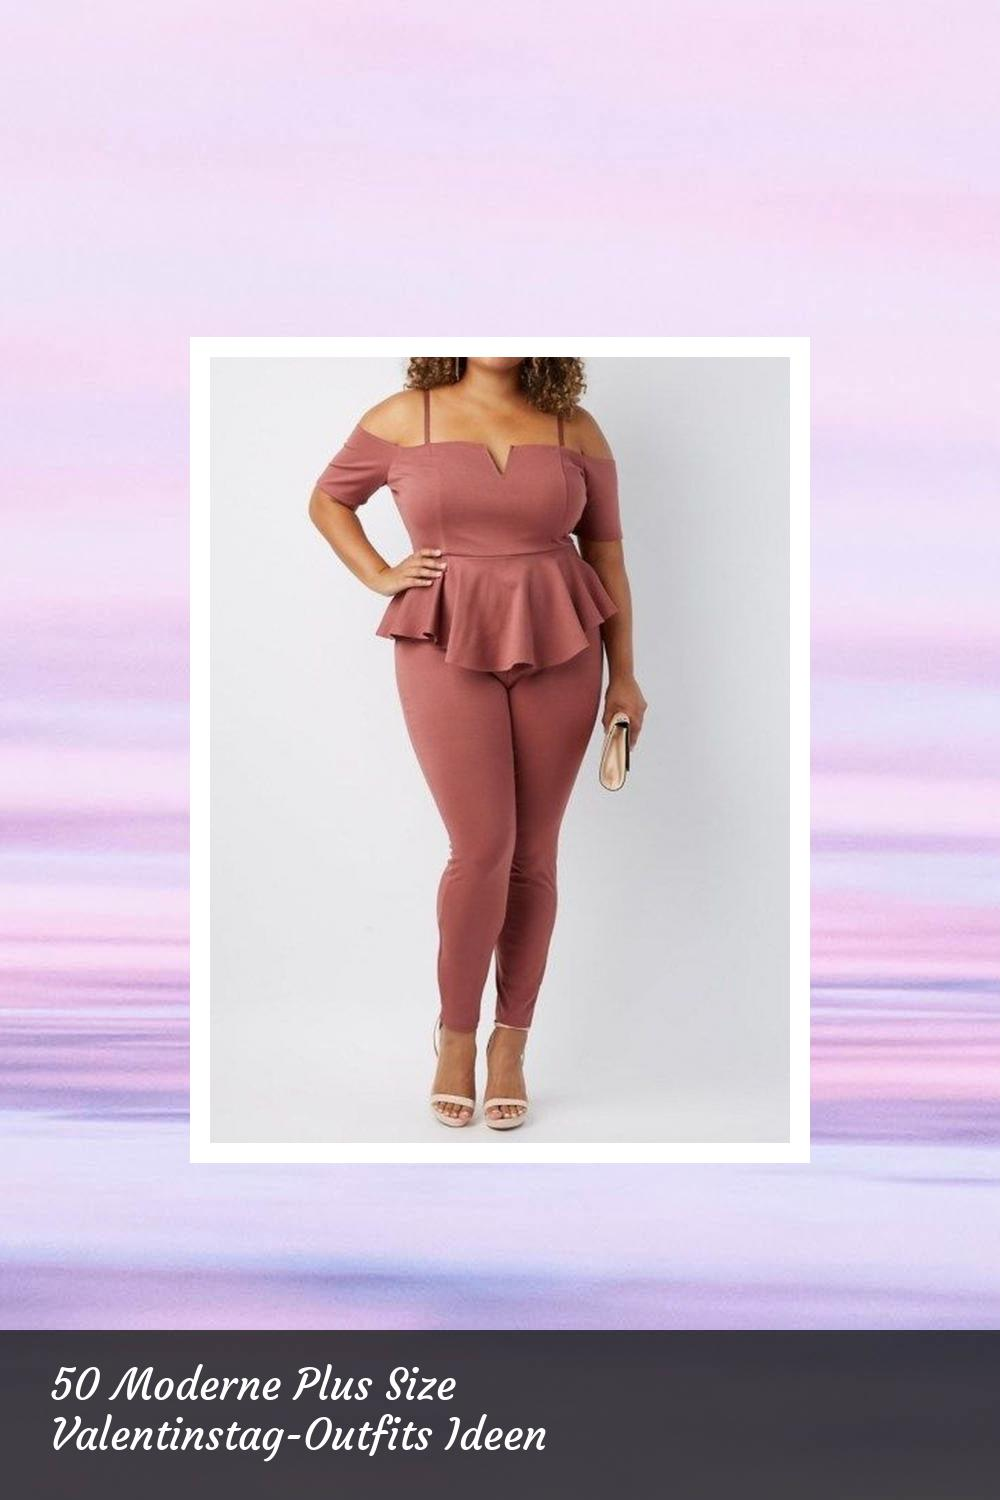 50 Moderne Plus Size Valentinstag-Outfits Ideen 34